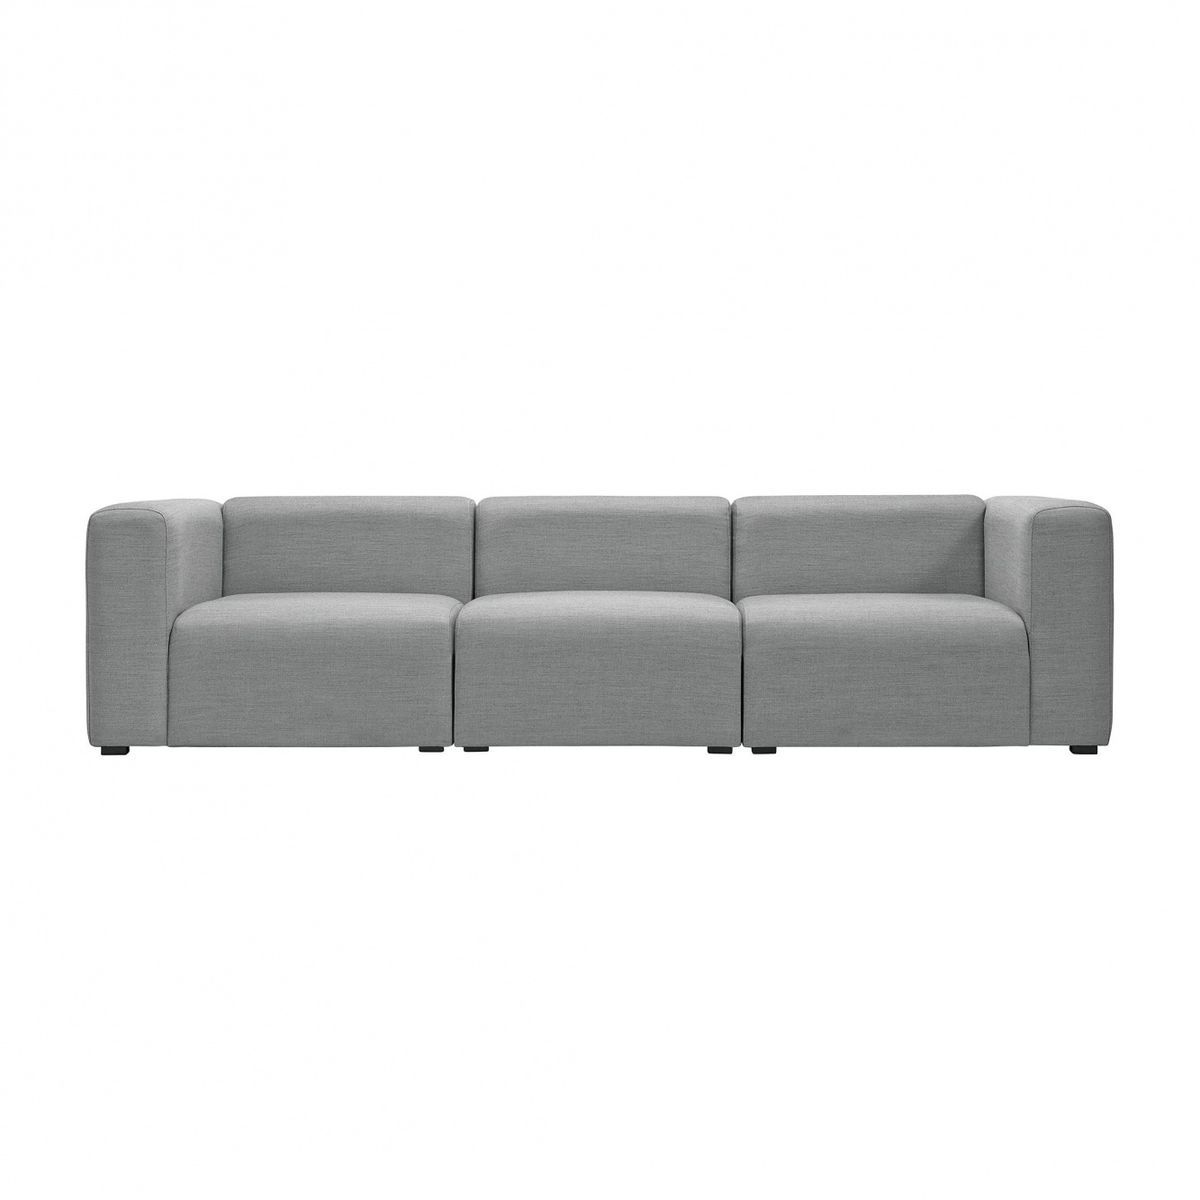 Mags 3 sitzer sofa stoff surface hay for Sofa 4 sitzer stoff